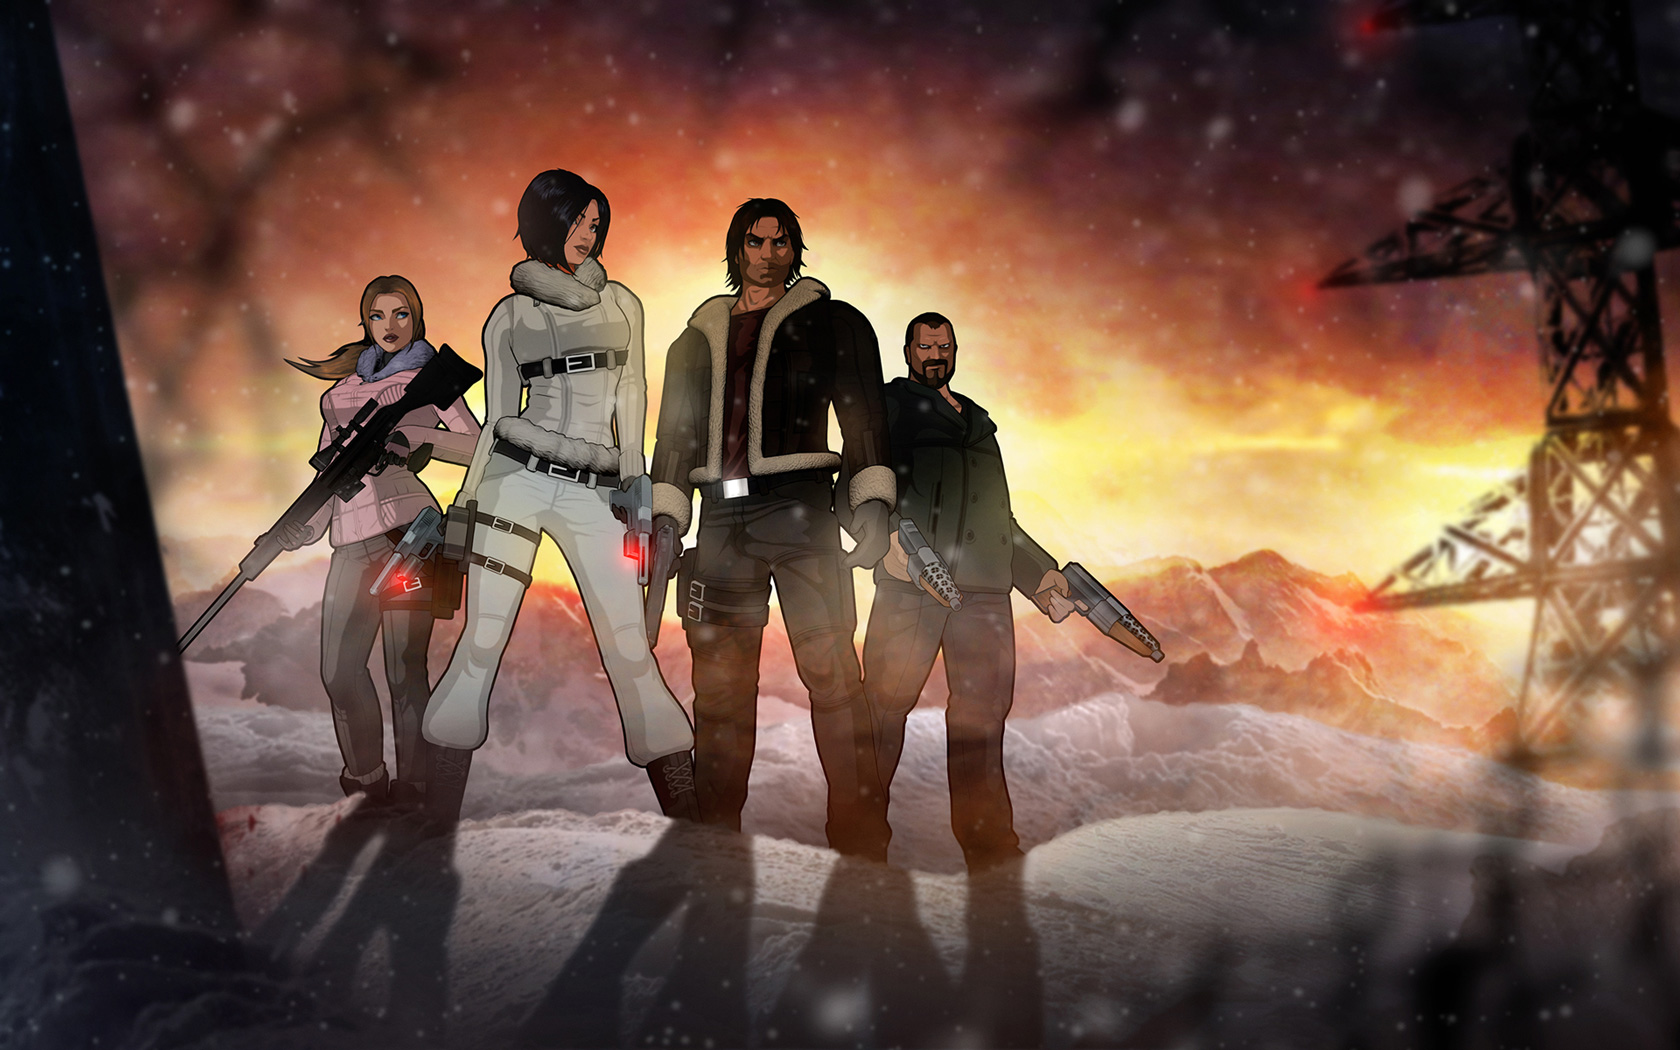 Fear Effect Sedna Wallpaper in 1680x1050